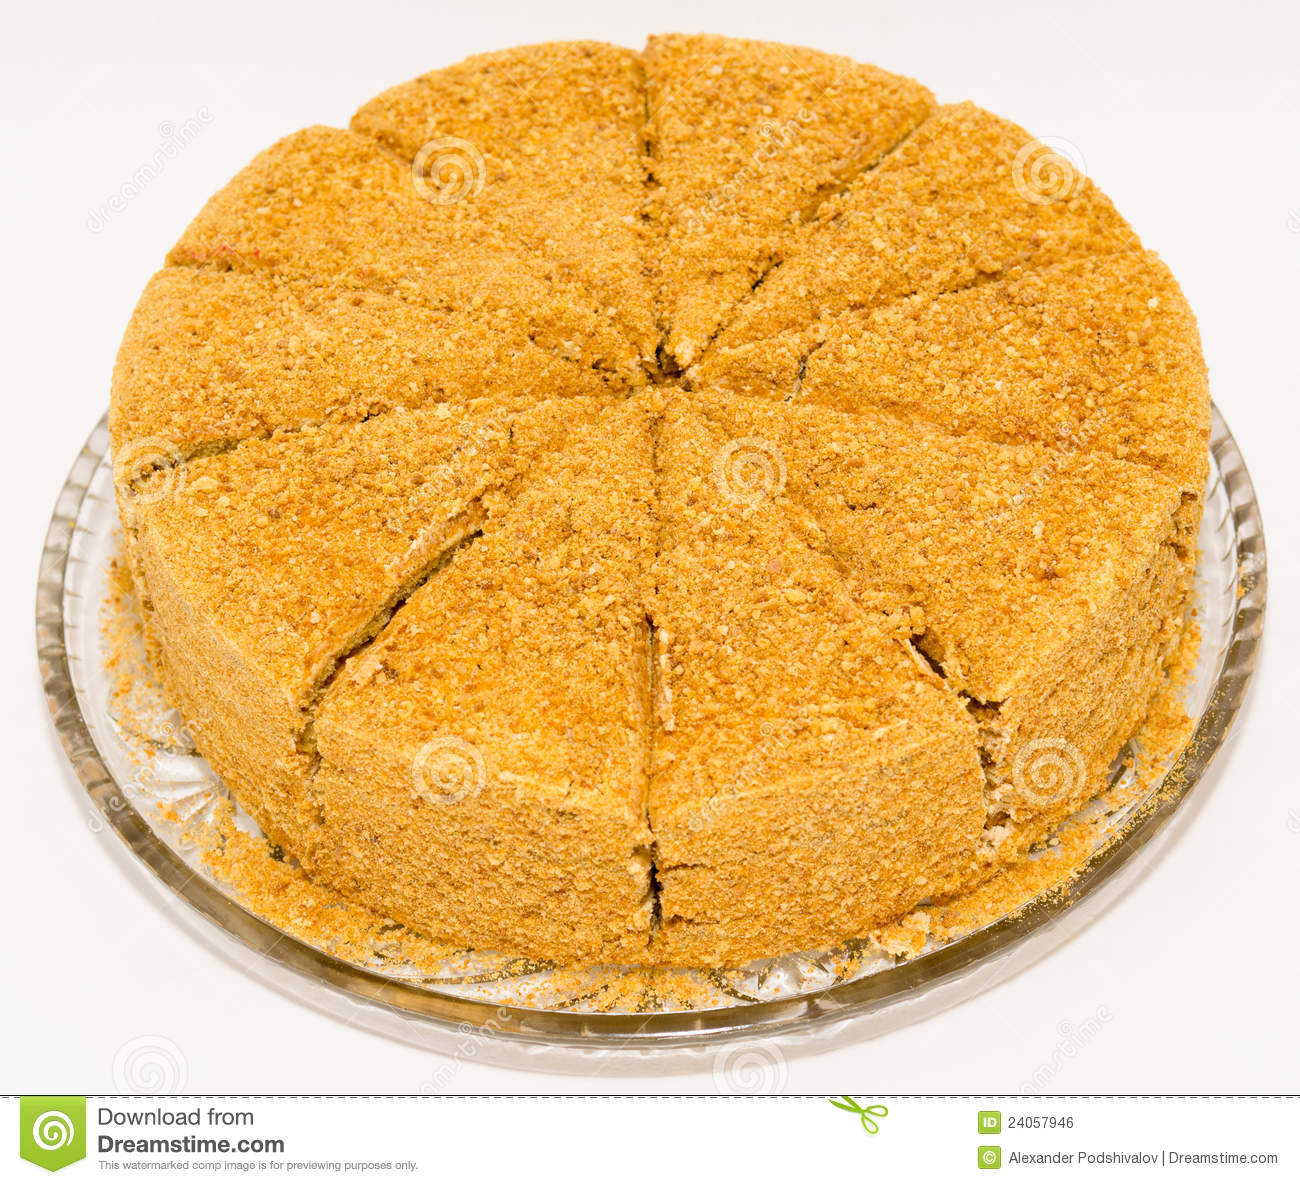 Clipart Of Honey Cake : A Honey Cake Royalty Free Stock Image - Image: 24057946